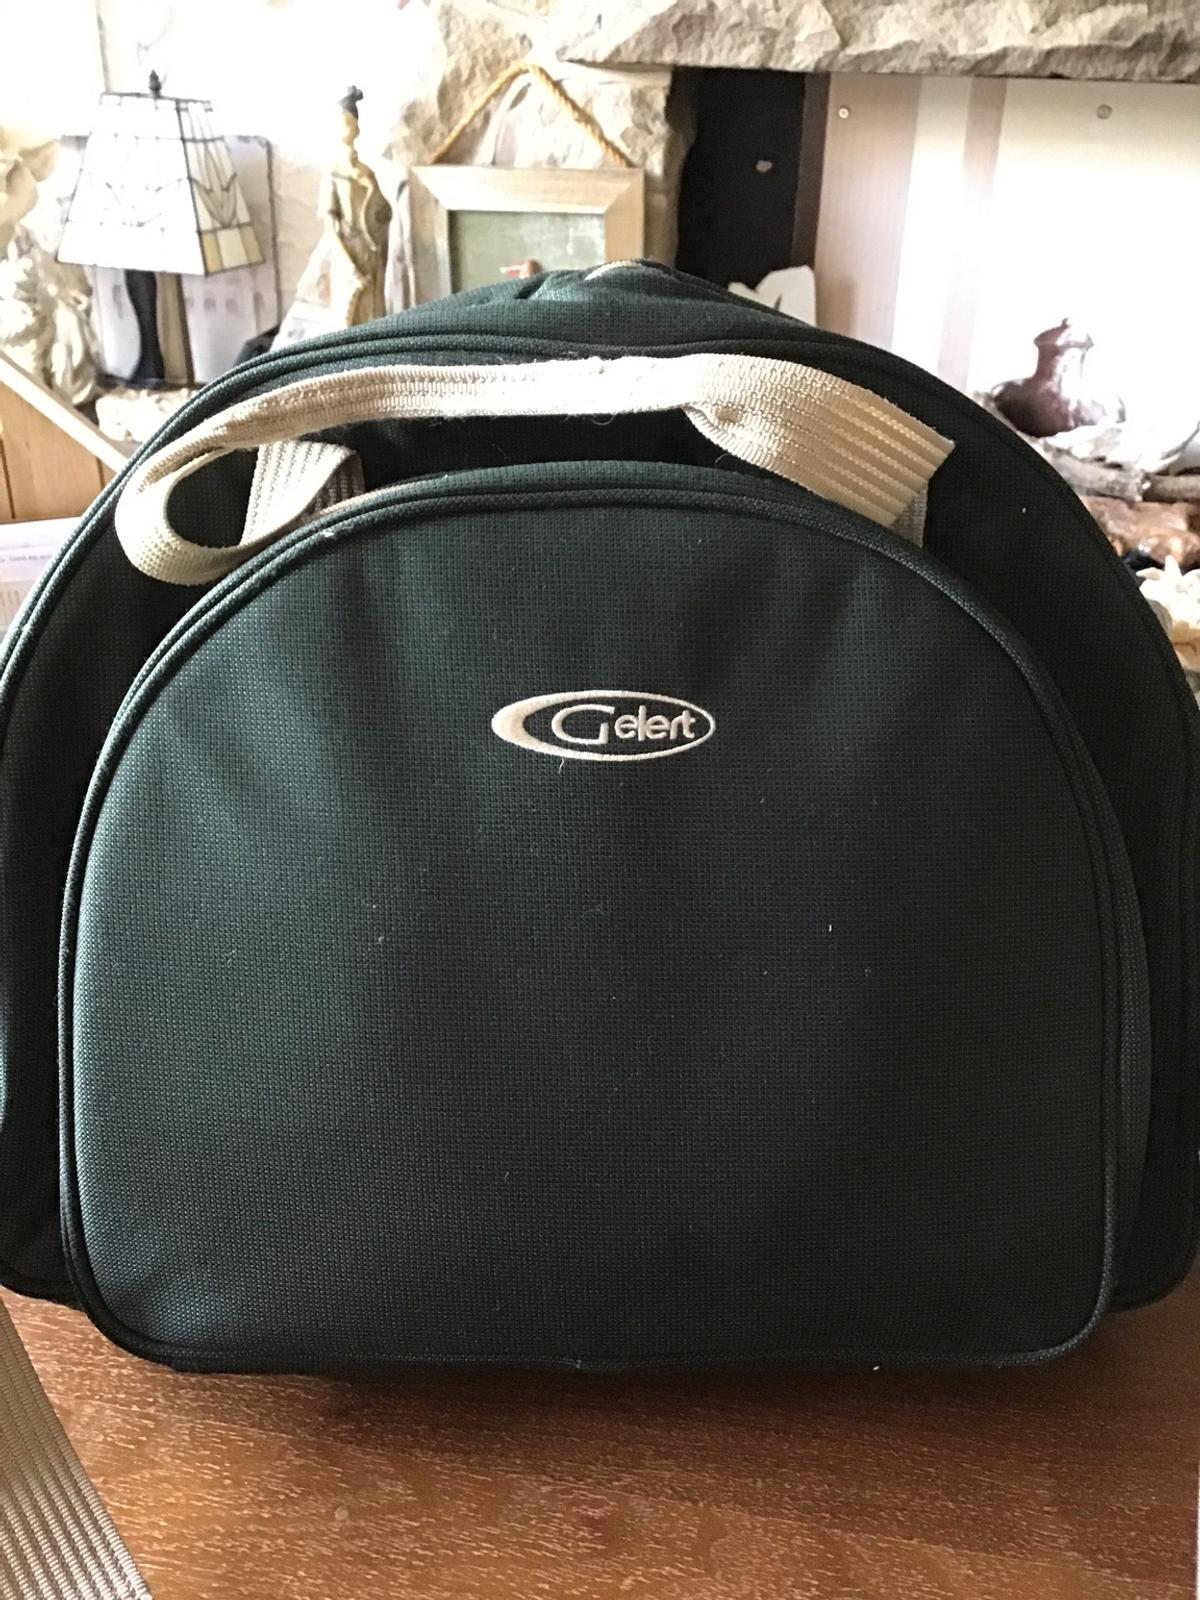 New without tags two piece setting ,large insulated compartment for keeping your food cool,handles or shoulder strap which is removable ,classy finish in British racing green